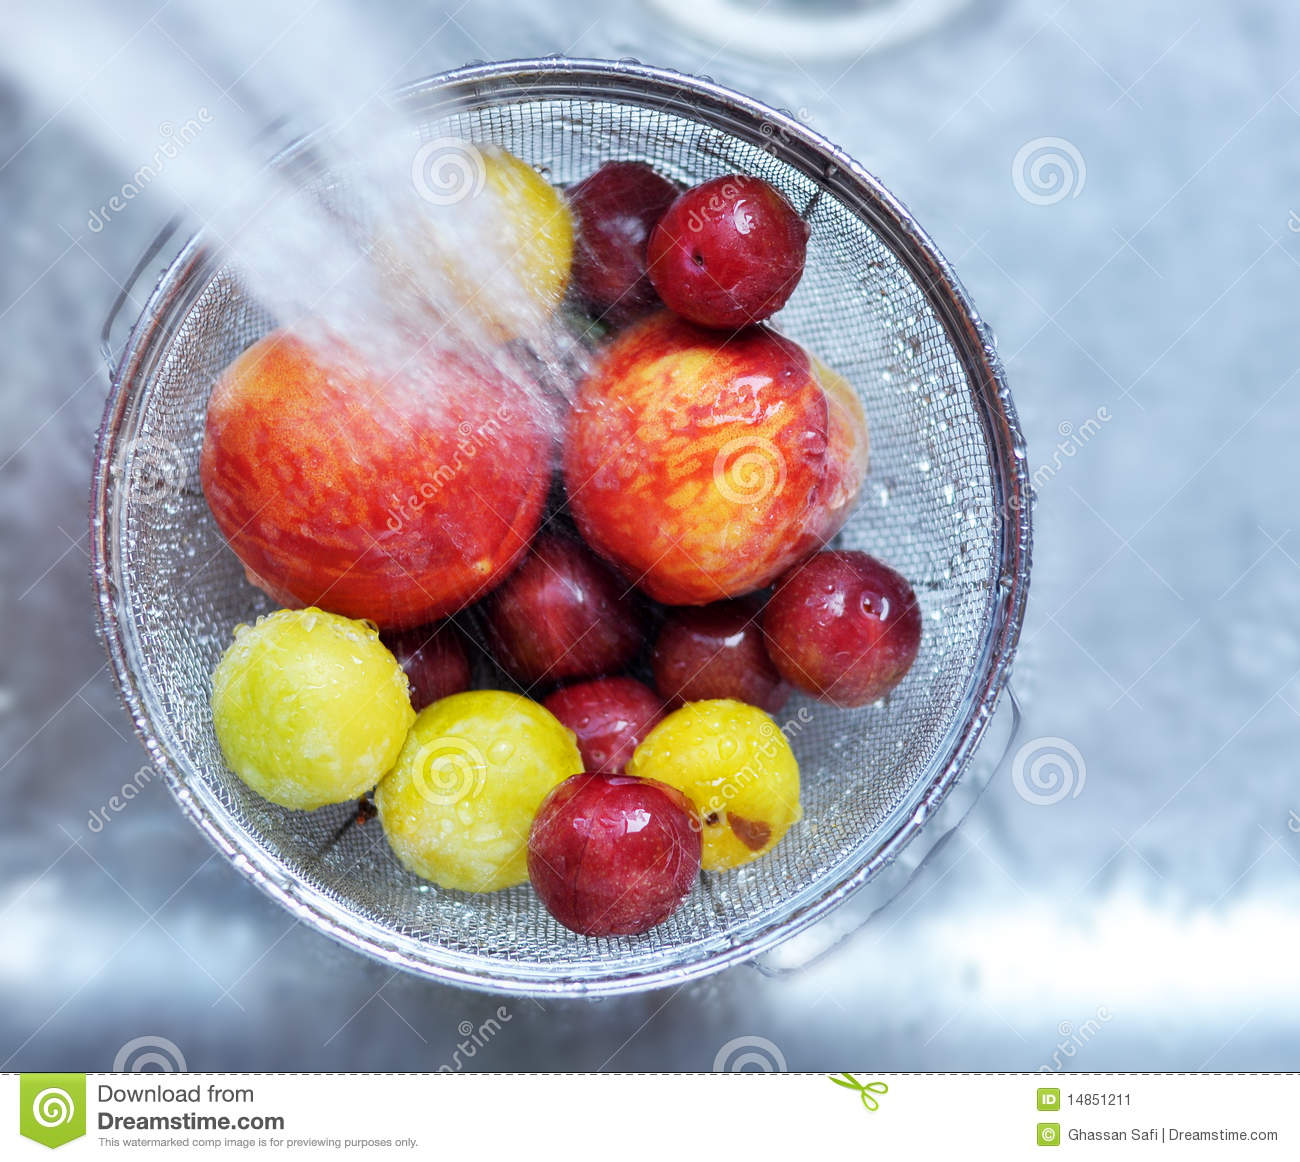 Fruit_cleaning_01